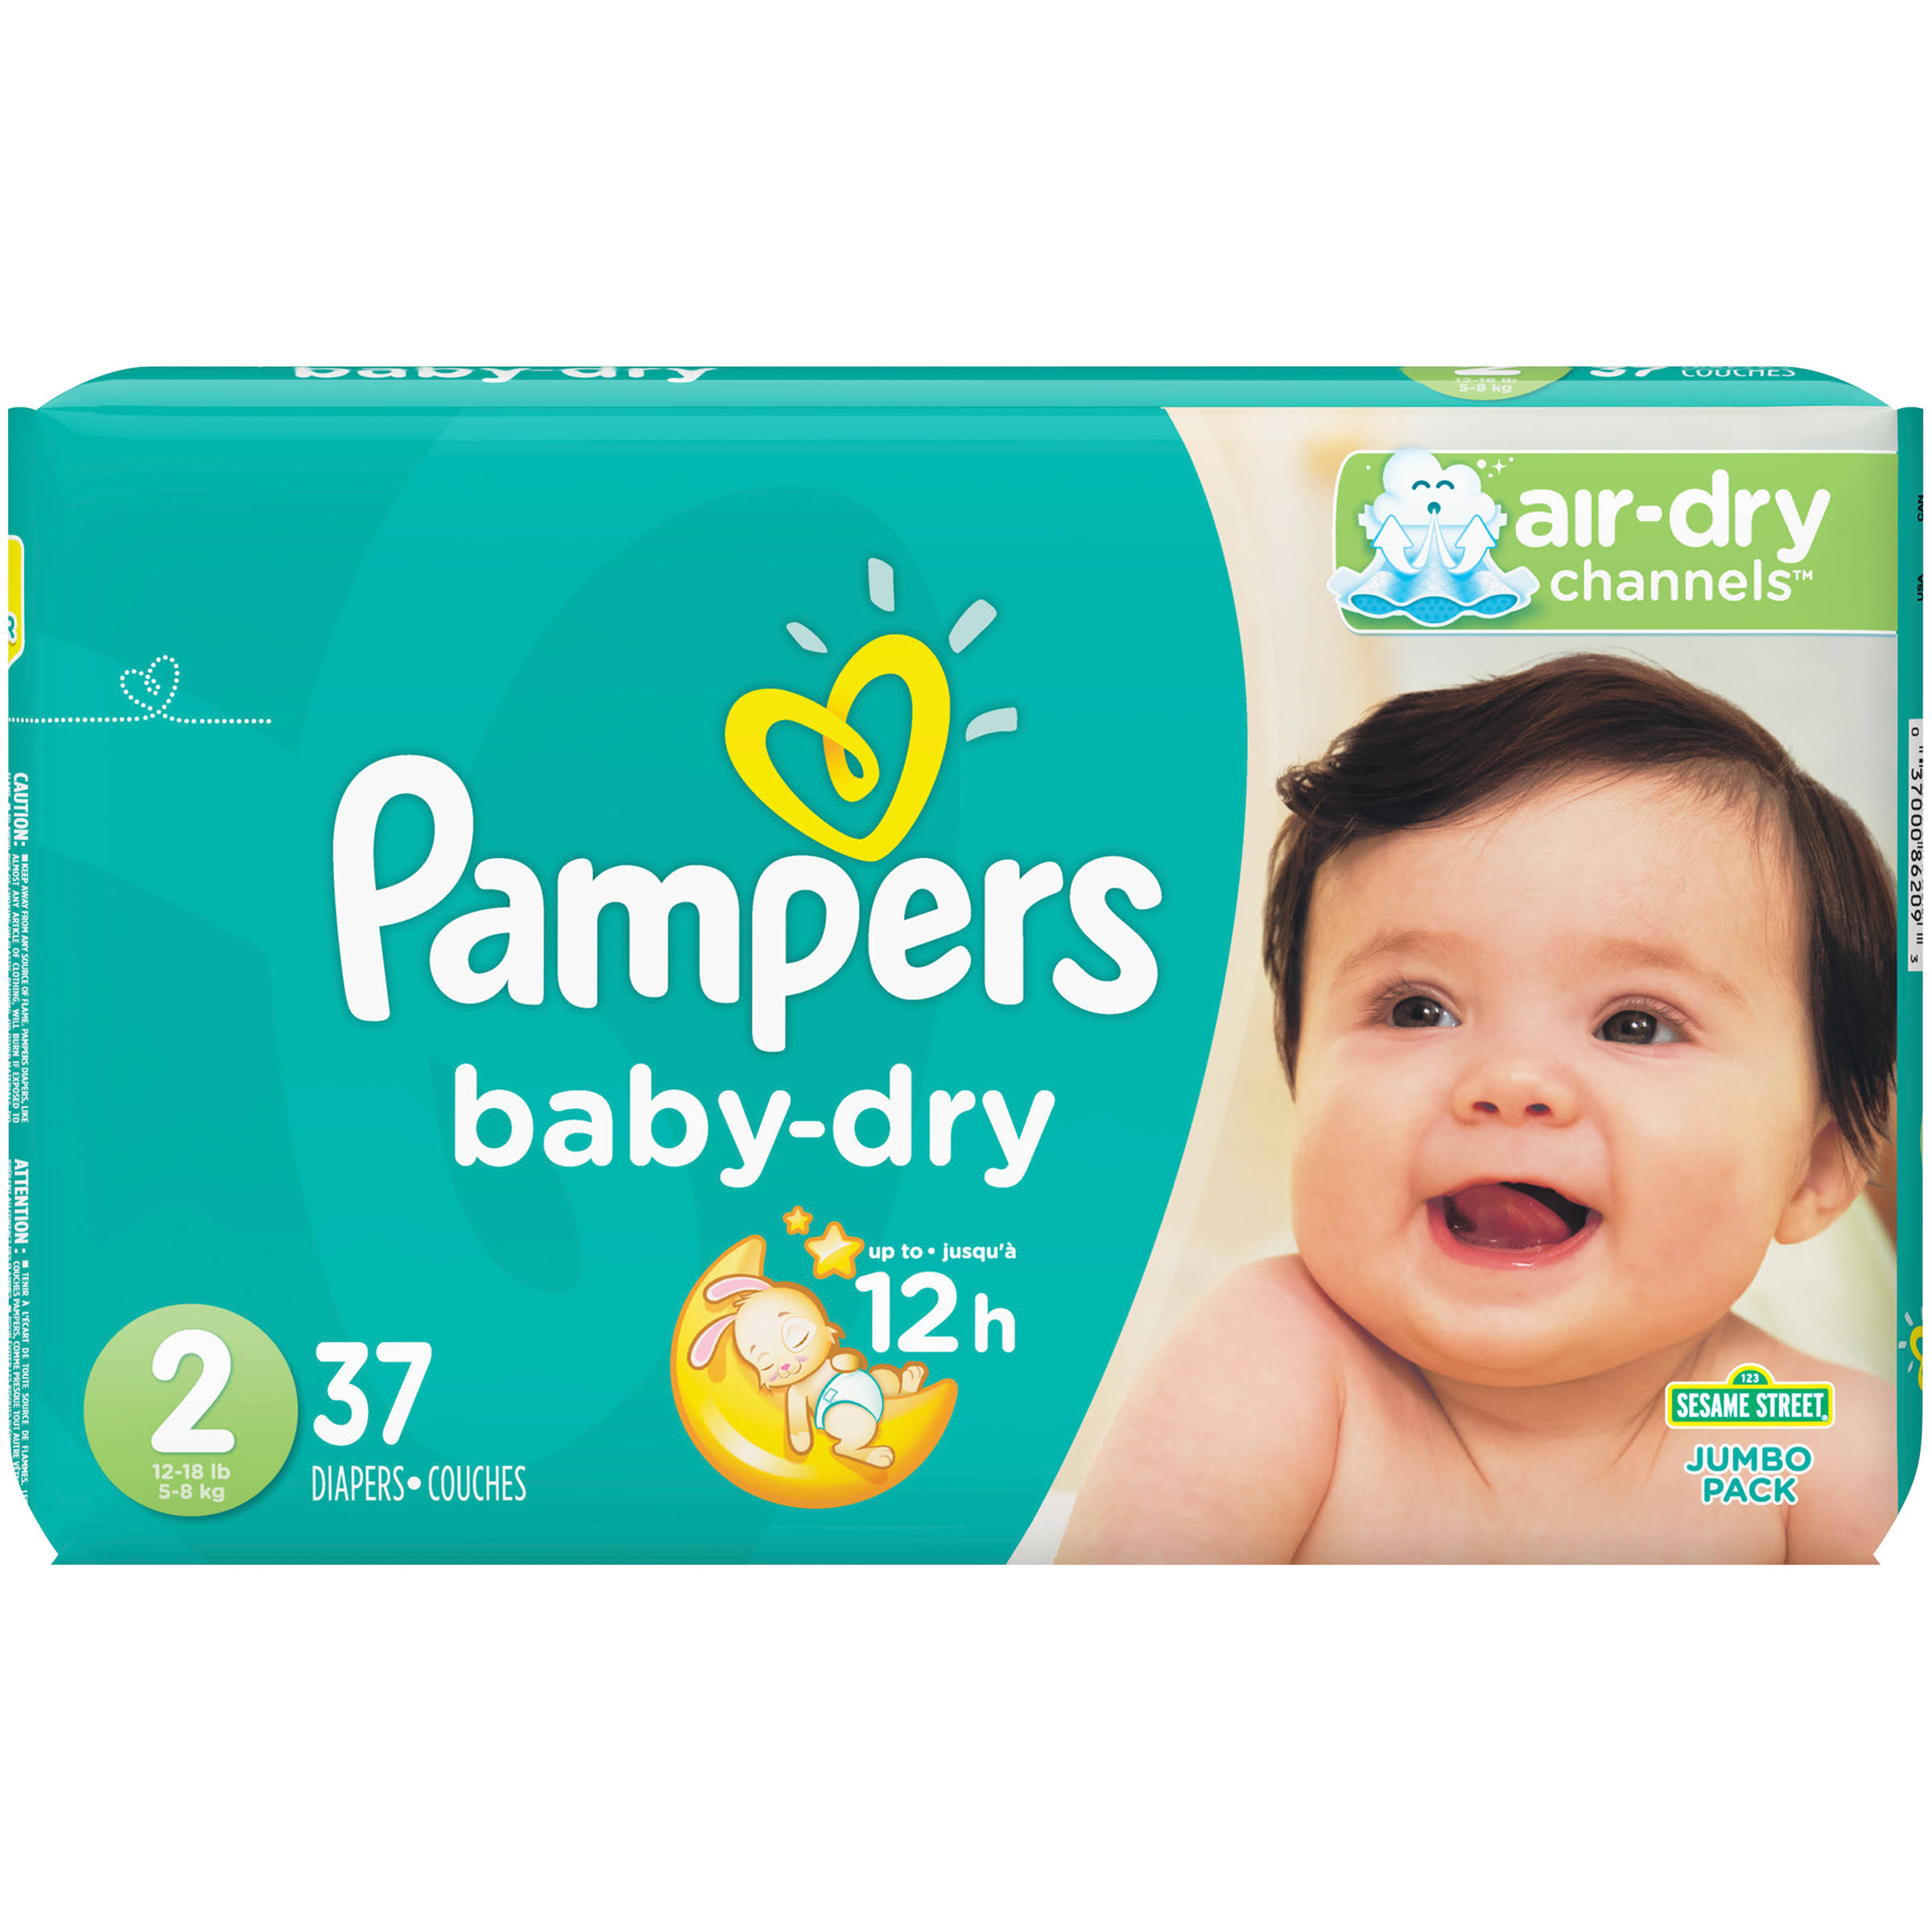 Pampers Baby Dry Diapers - Size 2, 37ct